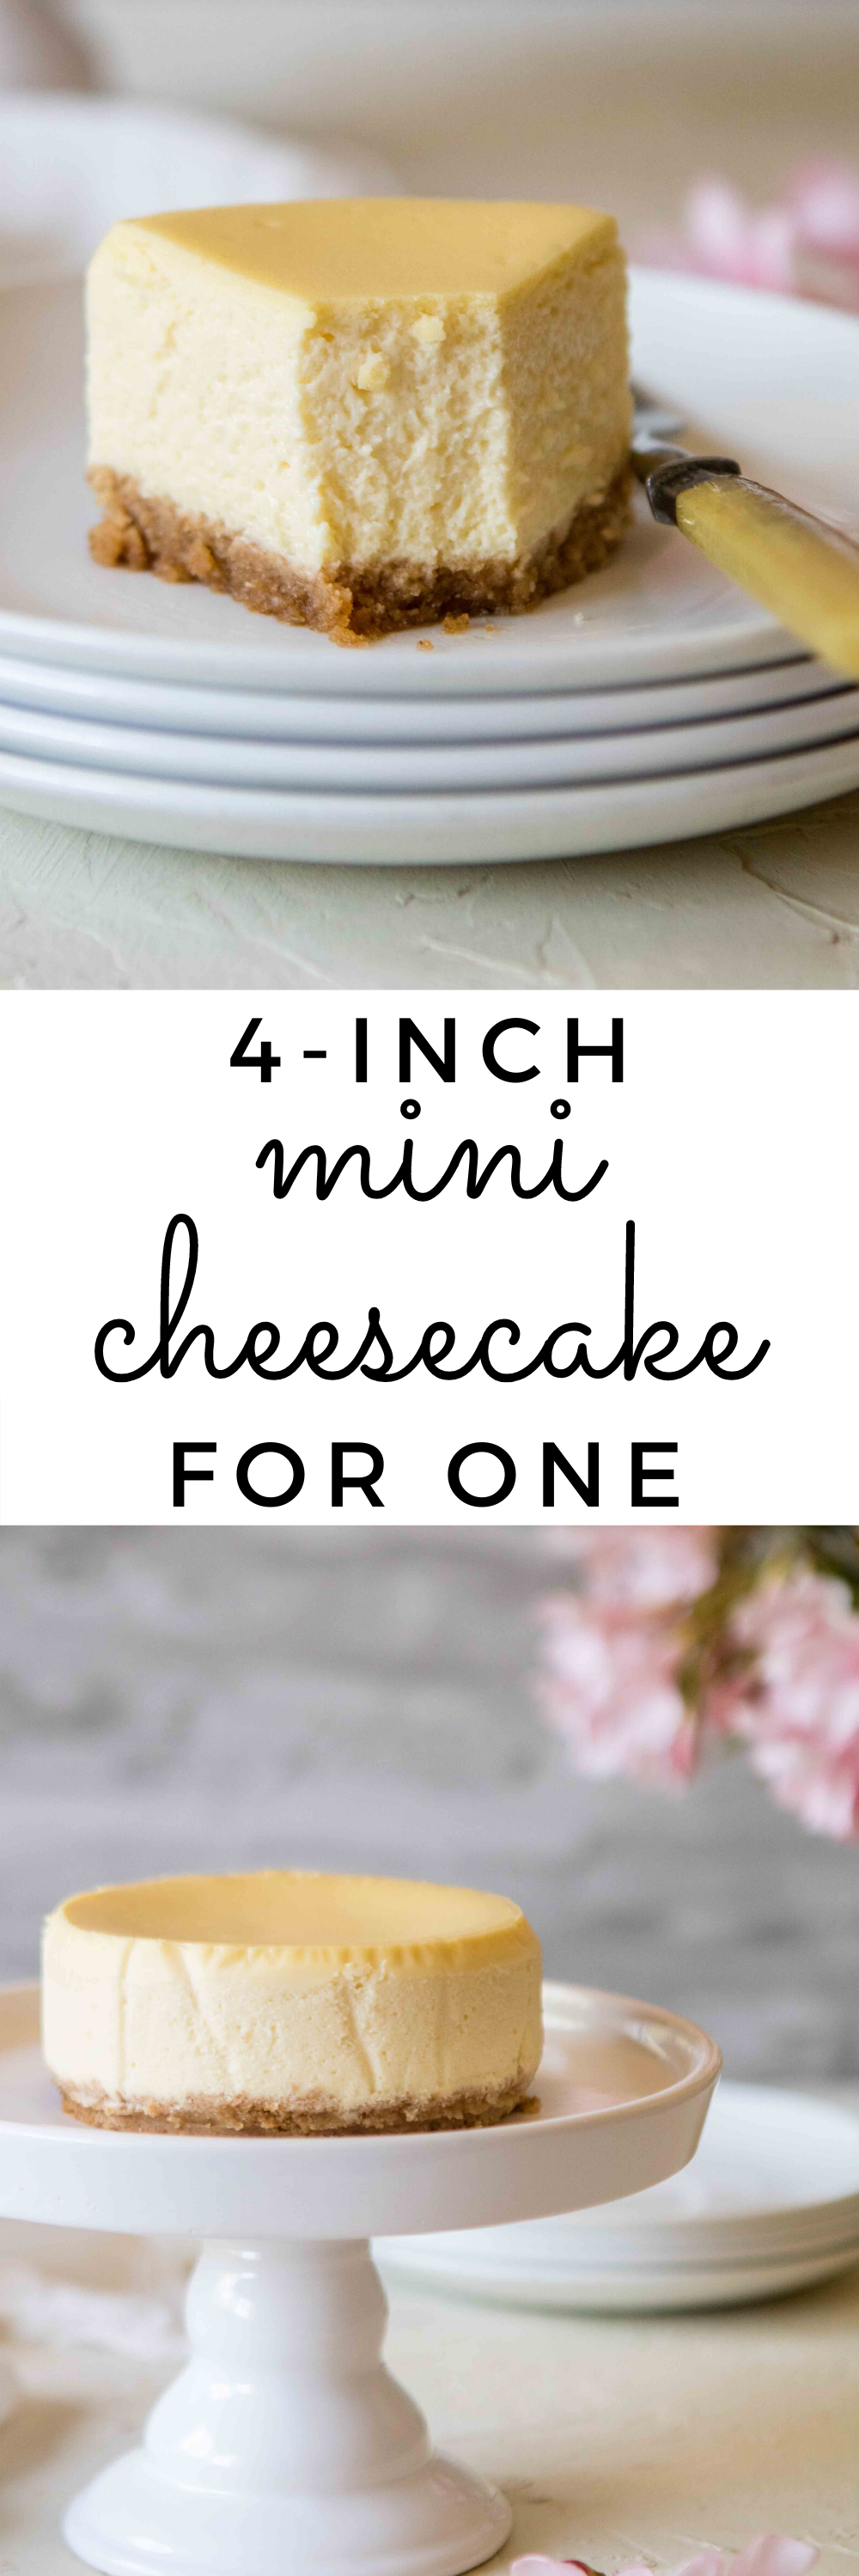 4- inch Mini Cheesecake recipe for one/two